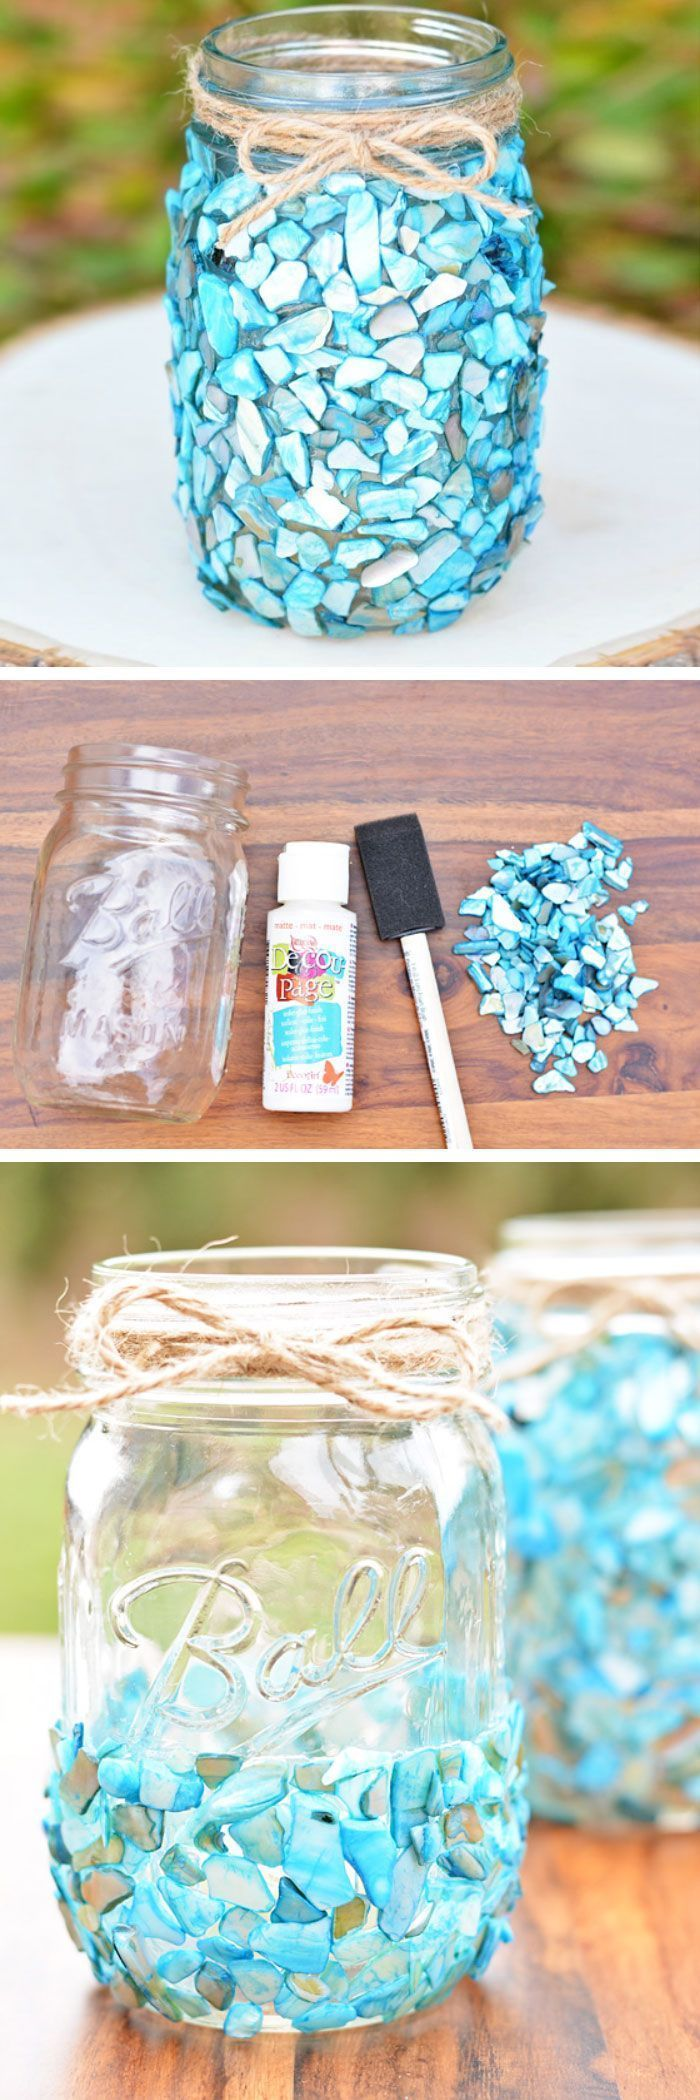 17 best ideas about seashell crafts on pinterest seashell crafts kids seashell art and - Diy projects with seashells personalize your home ...